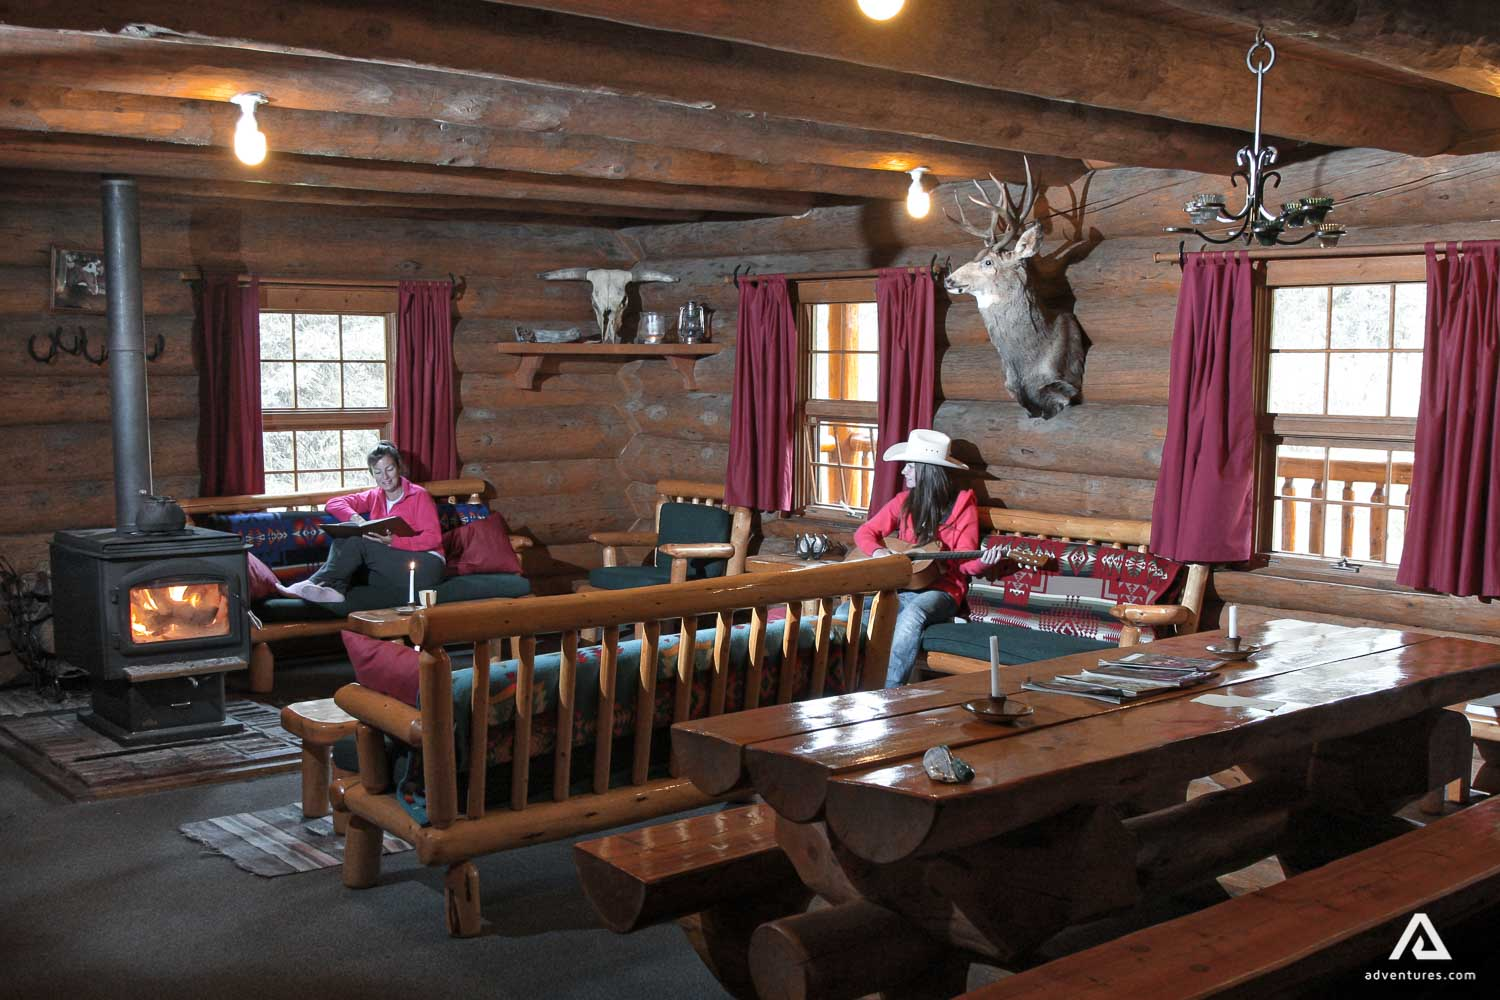 Cozy atmosphere in the lodge